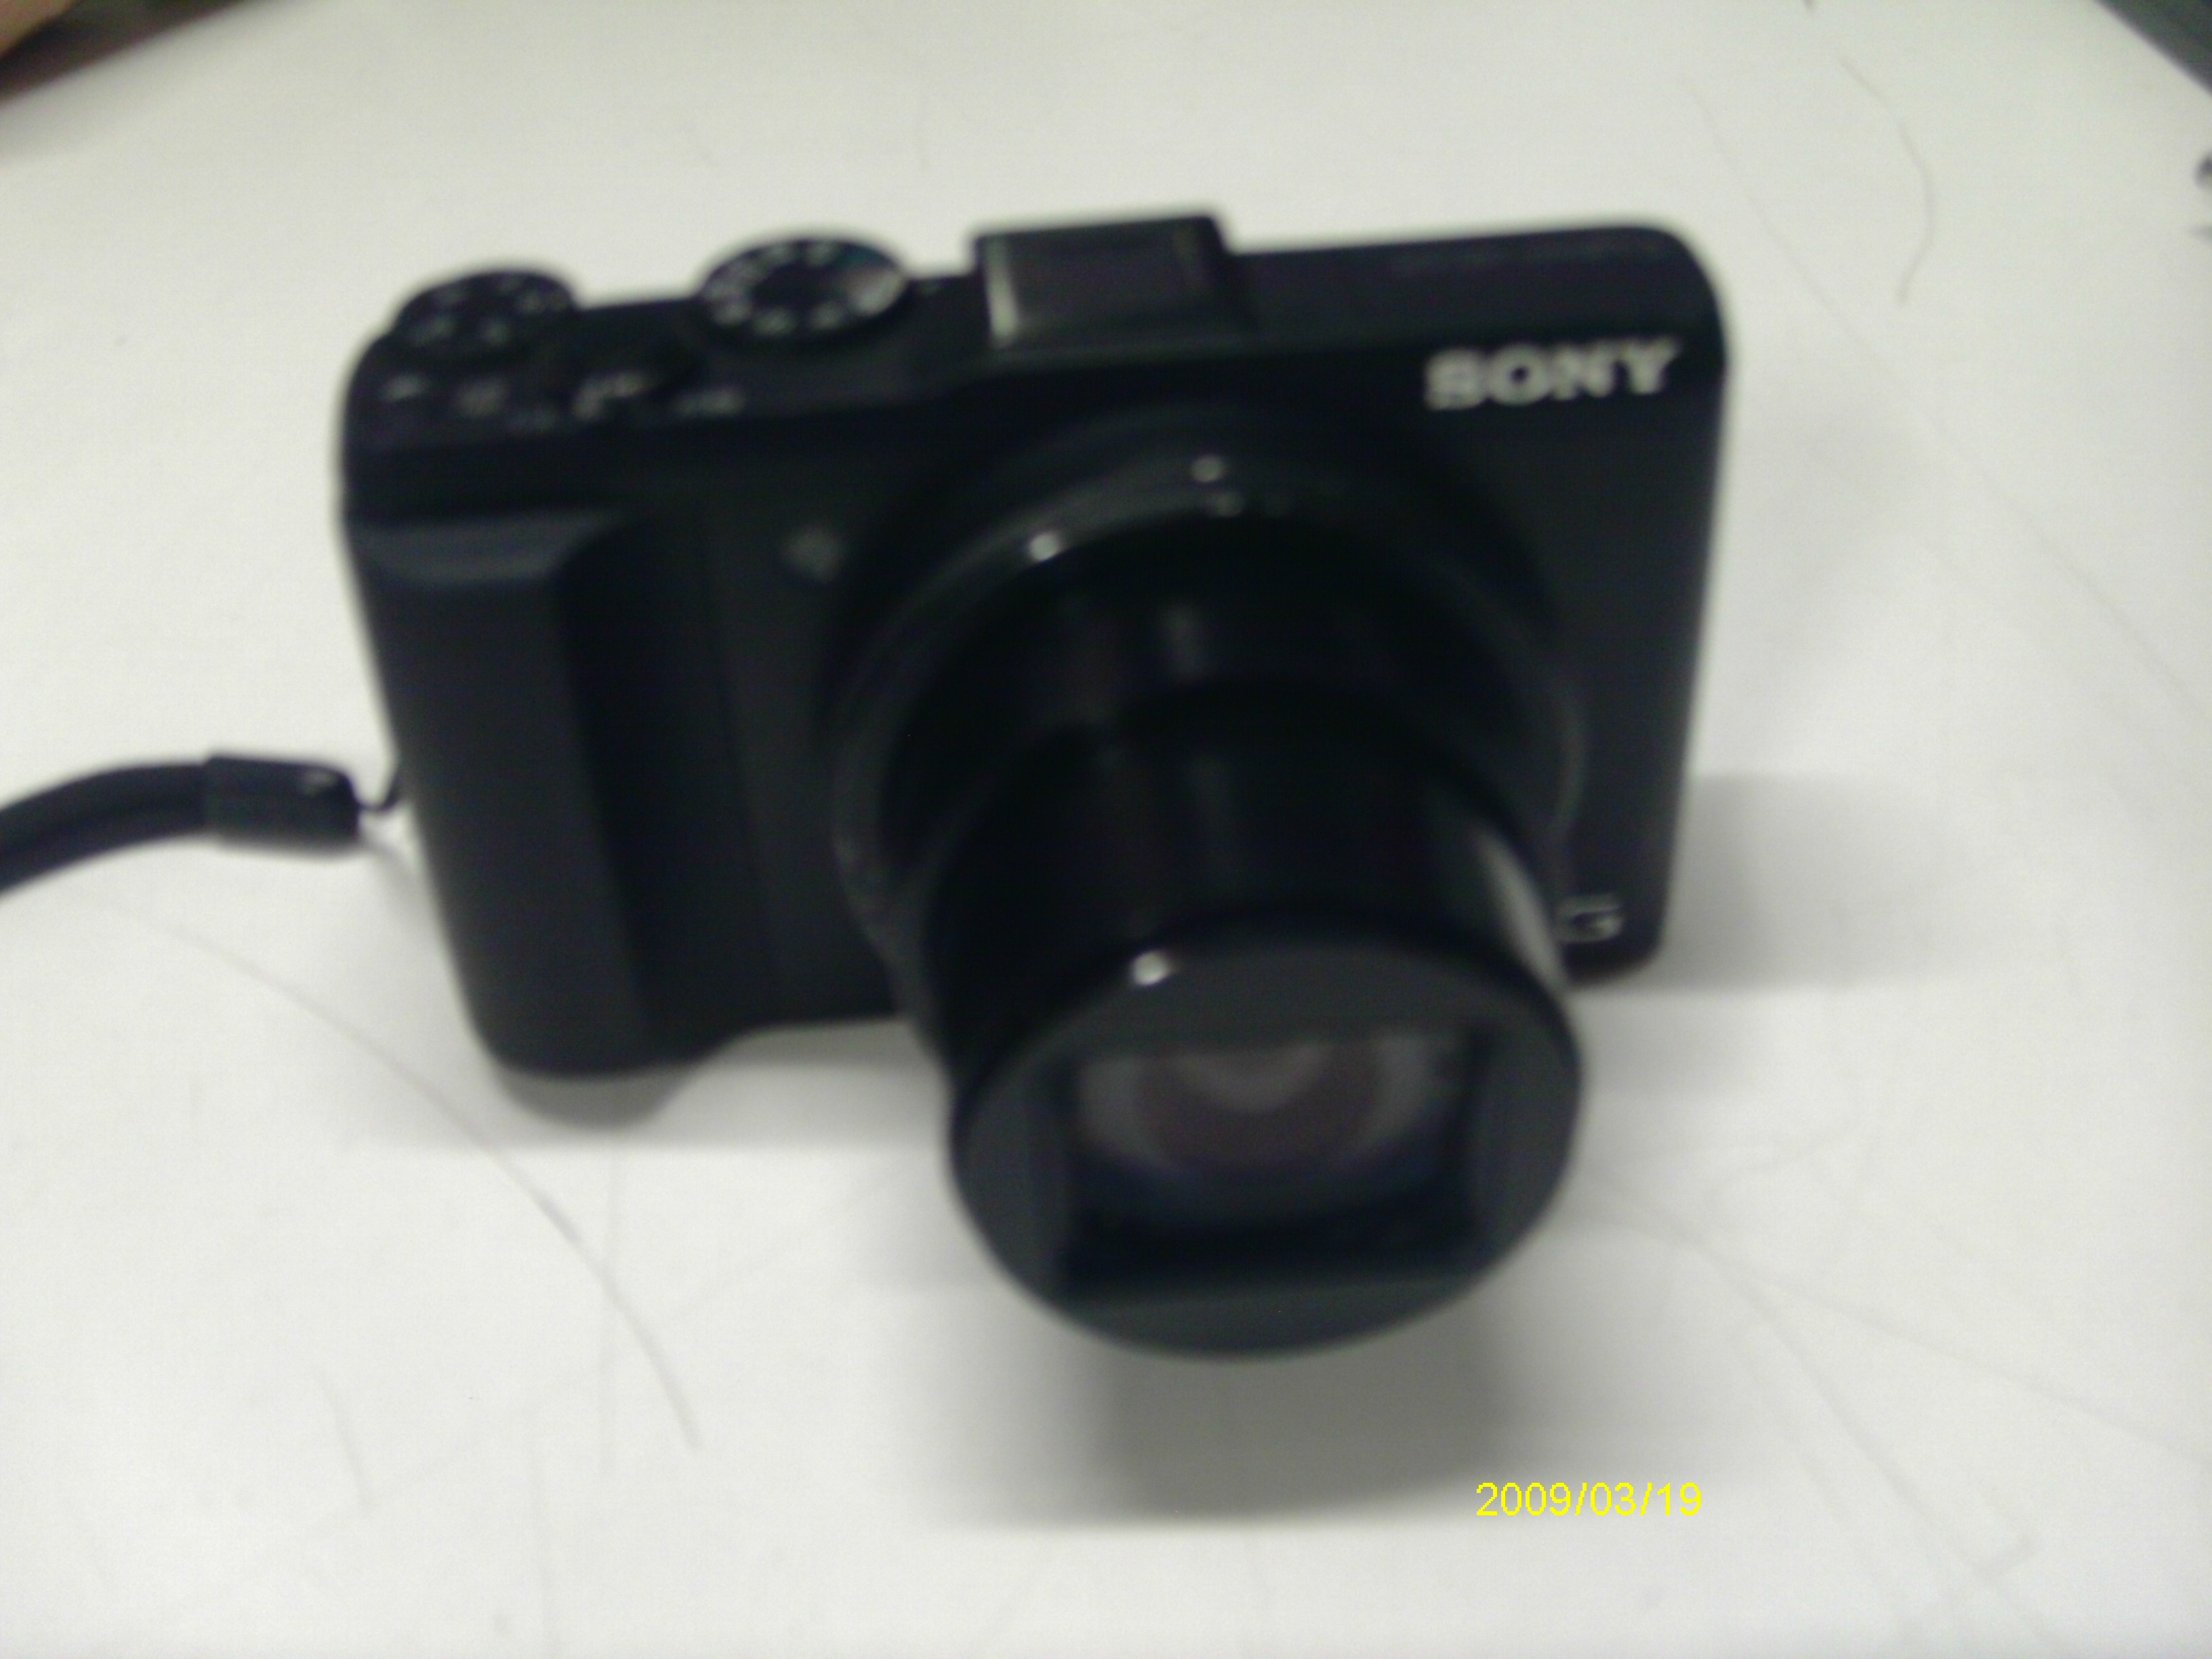 digital camera sonyDSC-HX50